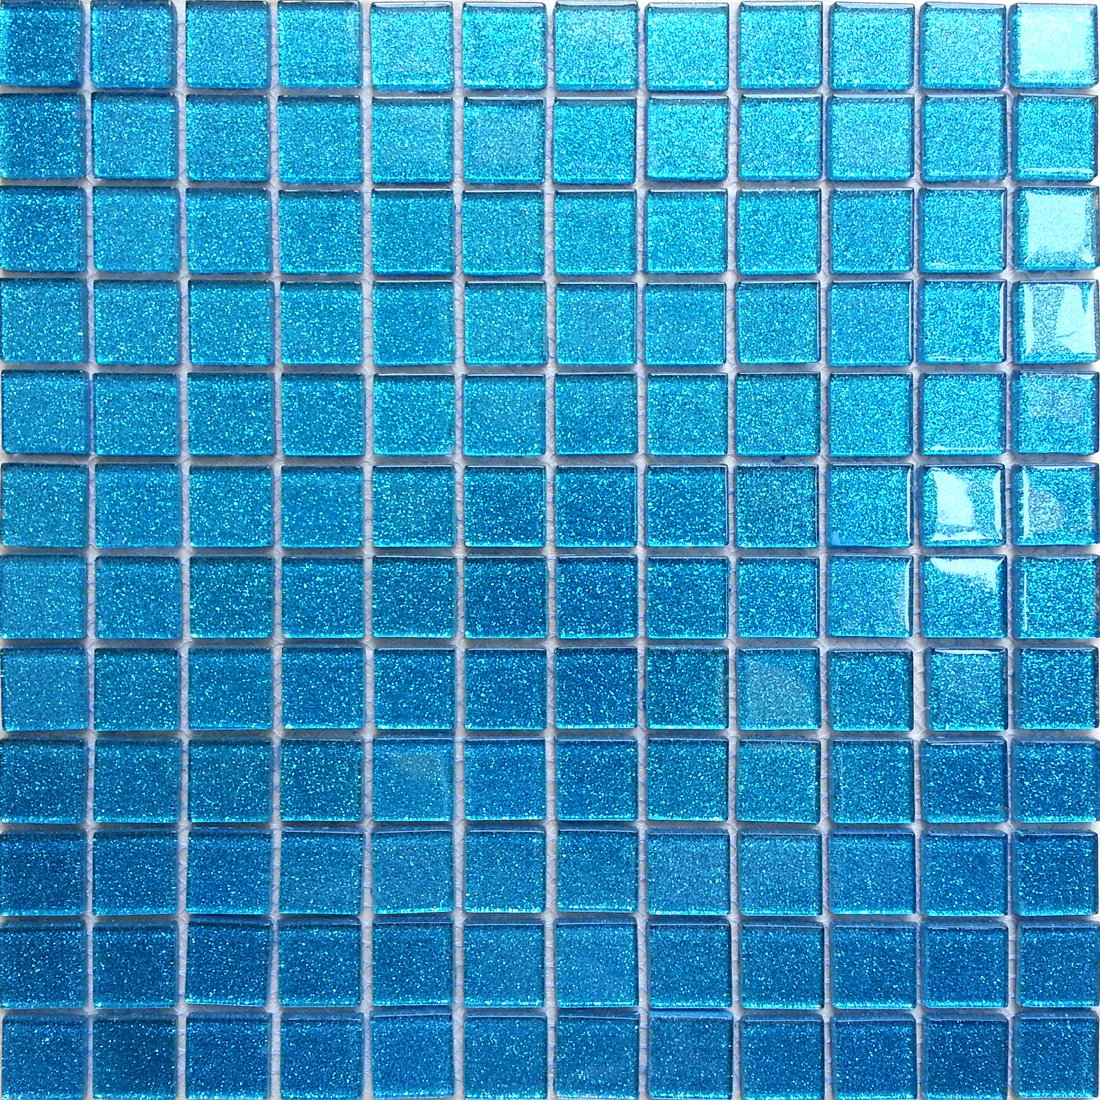 30x30cm Ocean Blue Glitter Glass Mosaic Tiles Sheet MT0008: Amazon ...